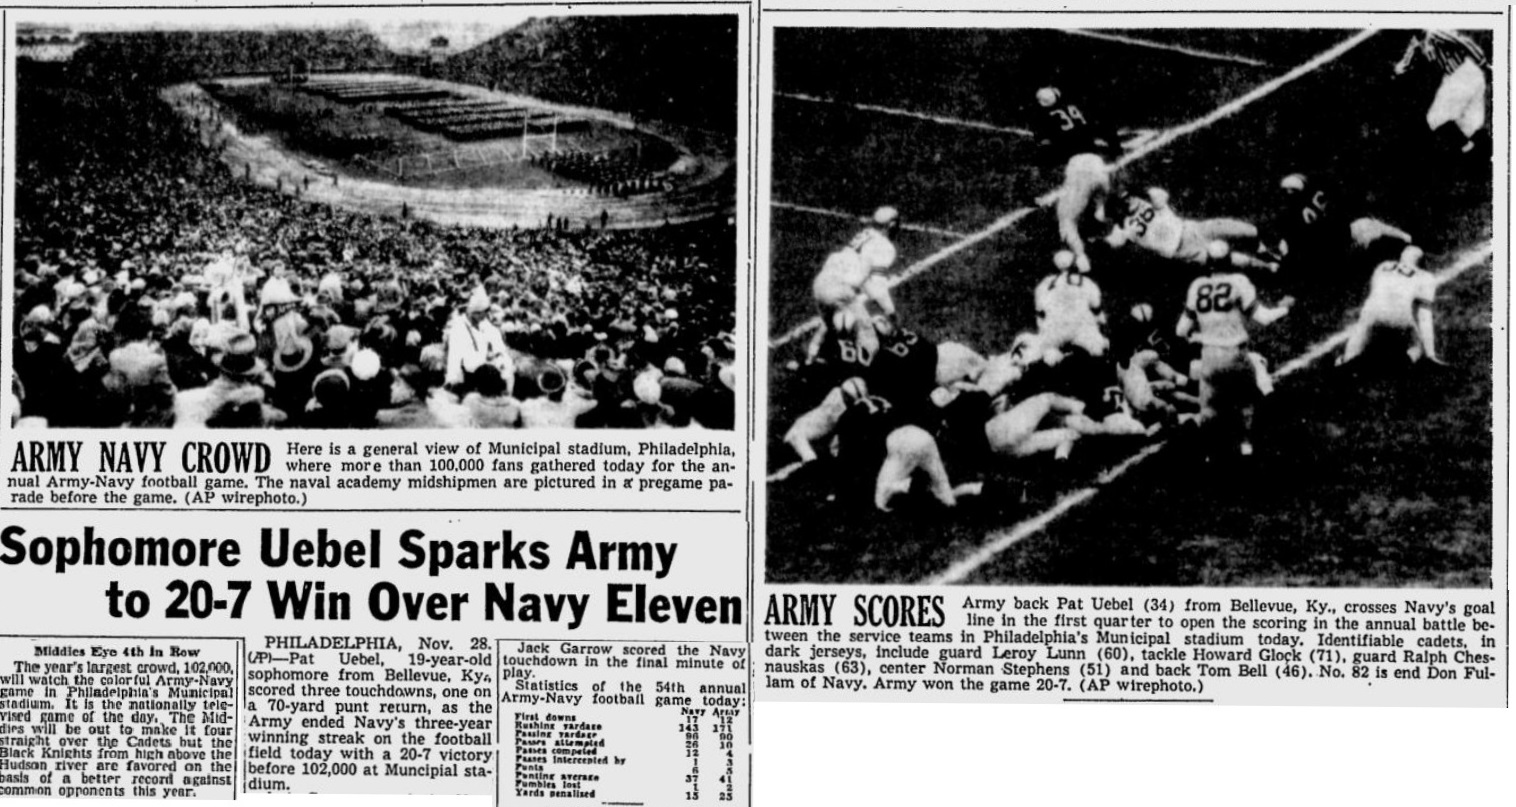 armyfb_1953_vsnavy_spokanedailychronicle_nov281953